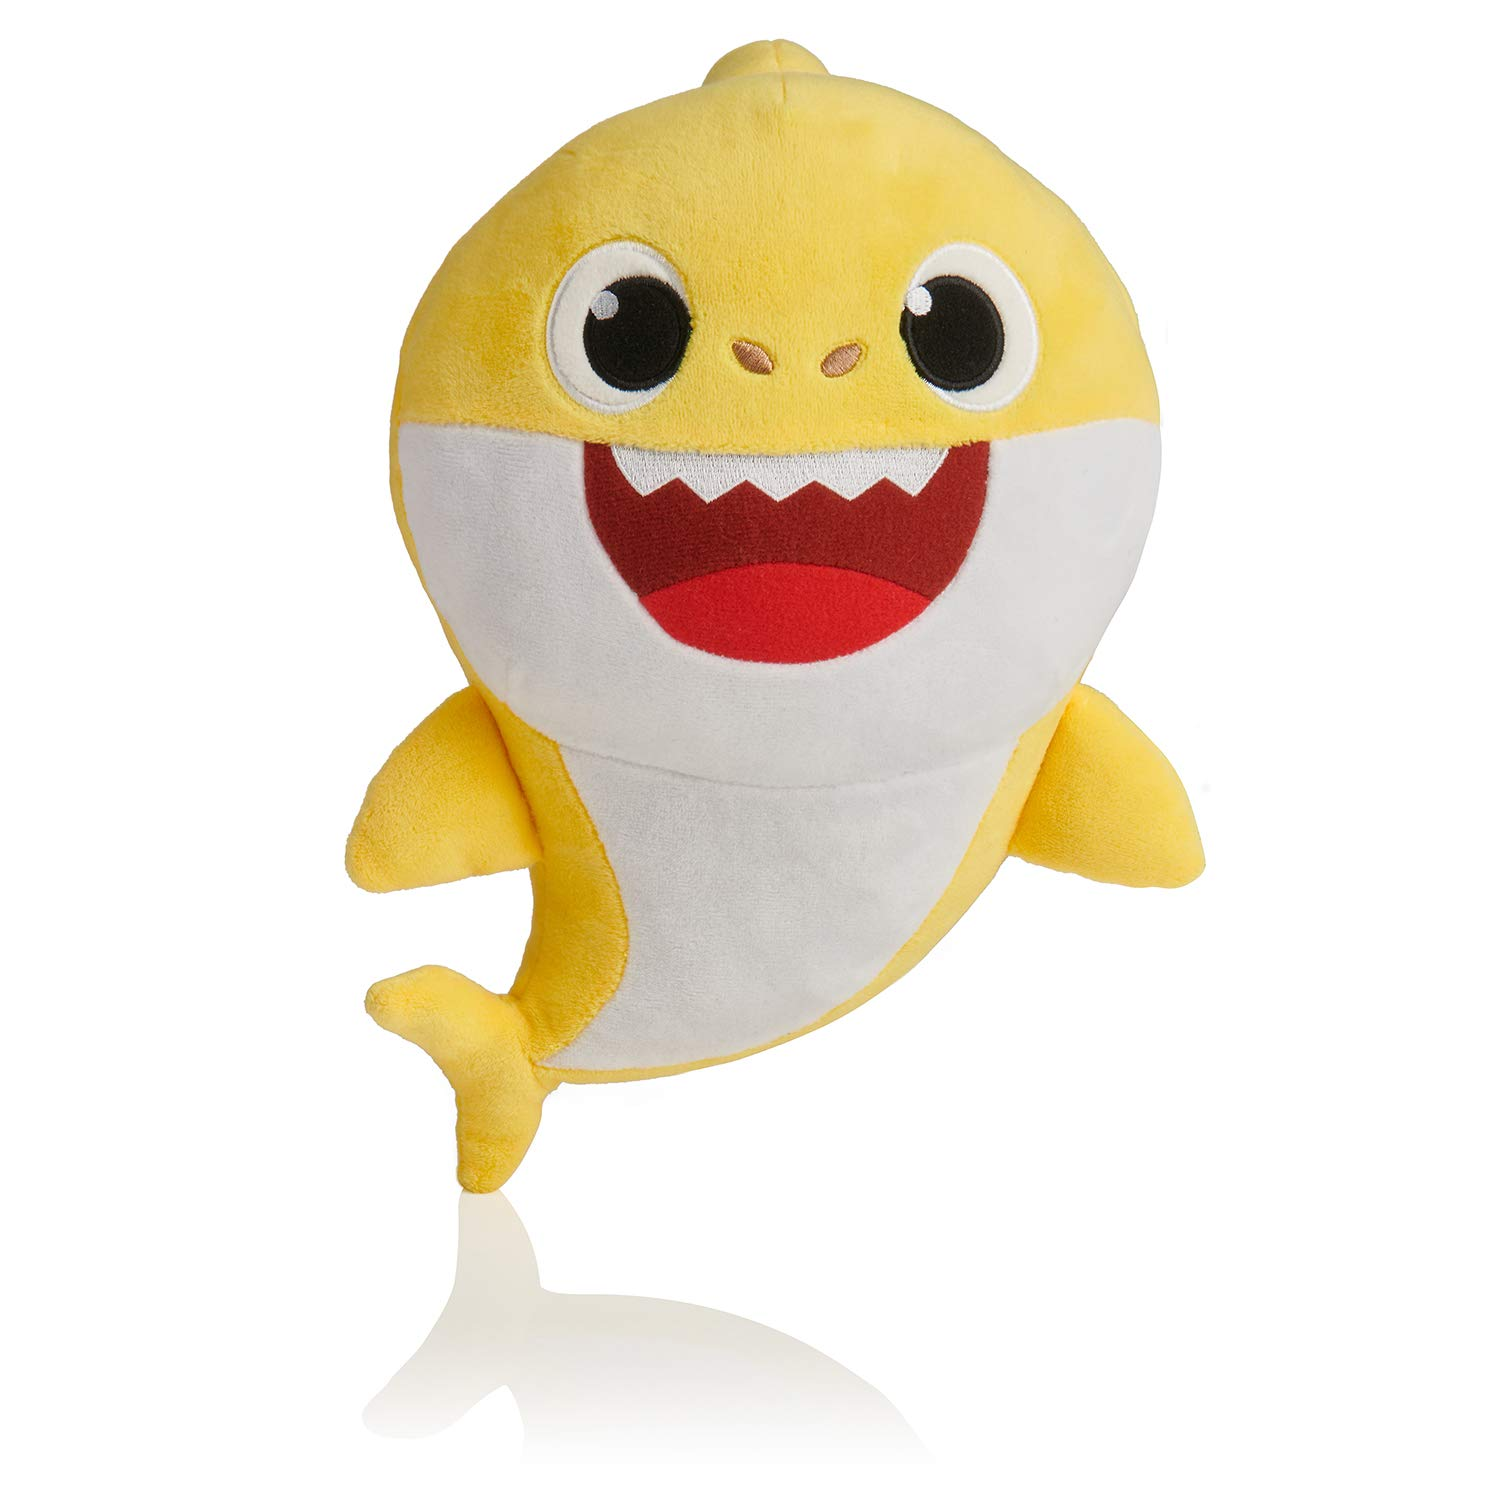 Baby Shark Plush Singing Plush Toys Music Doll English Song toy gift for kids HQ